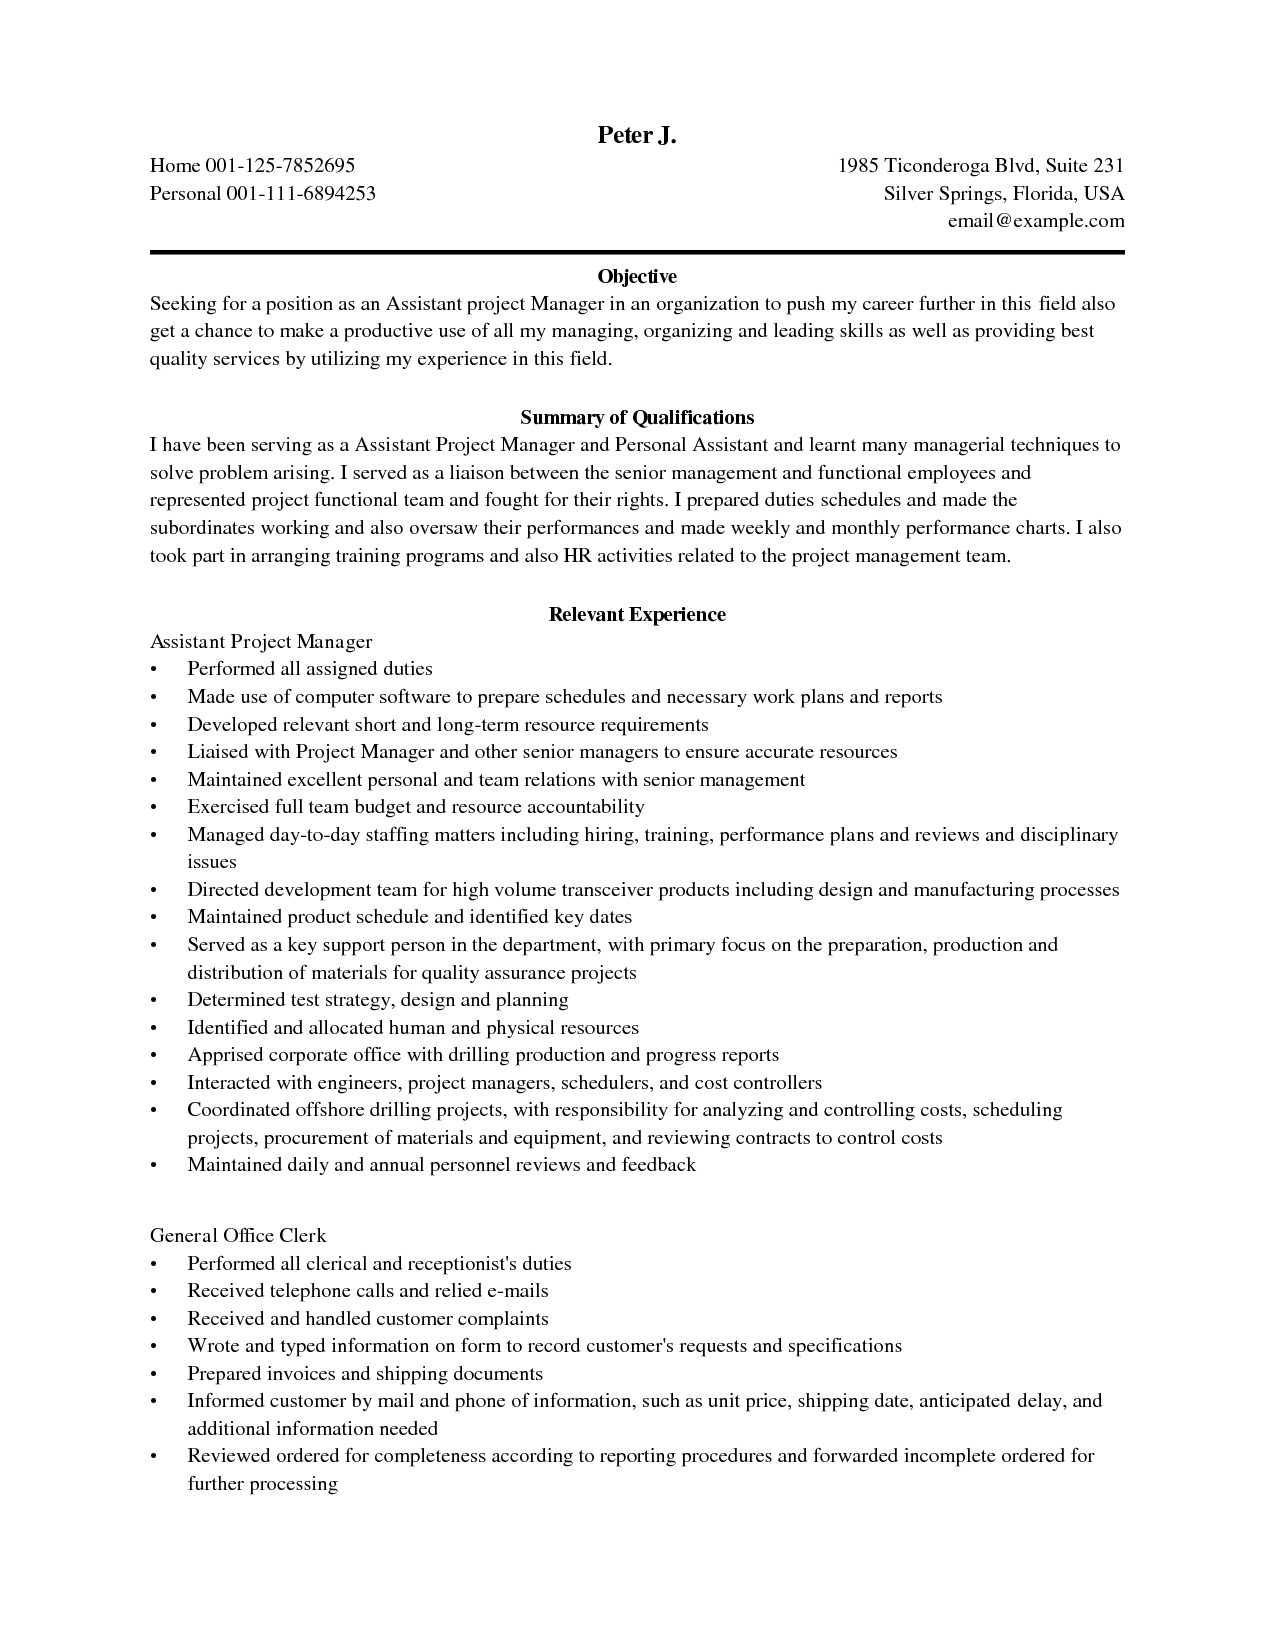 Resume Project Manager Job Description For Resume resume manager duties staff accountant keywords 1lm general home construction project job description assistant resume